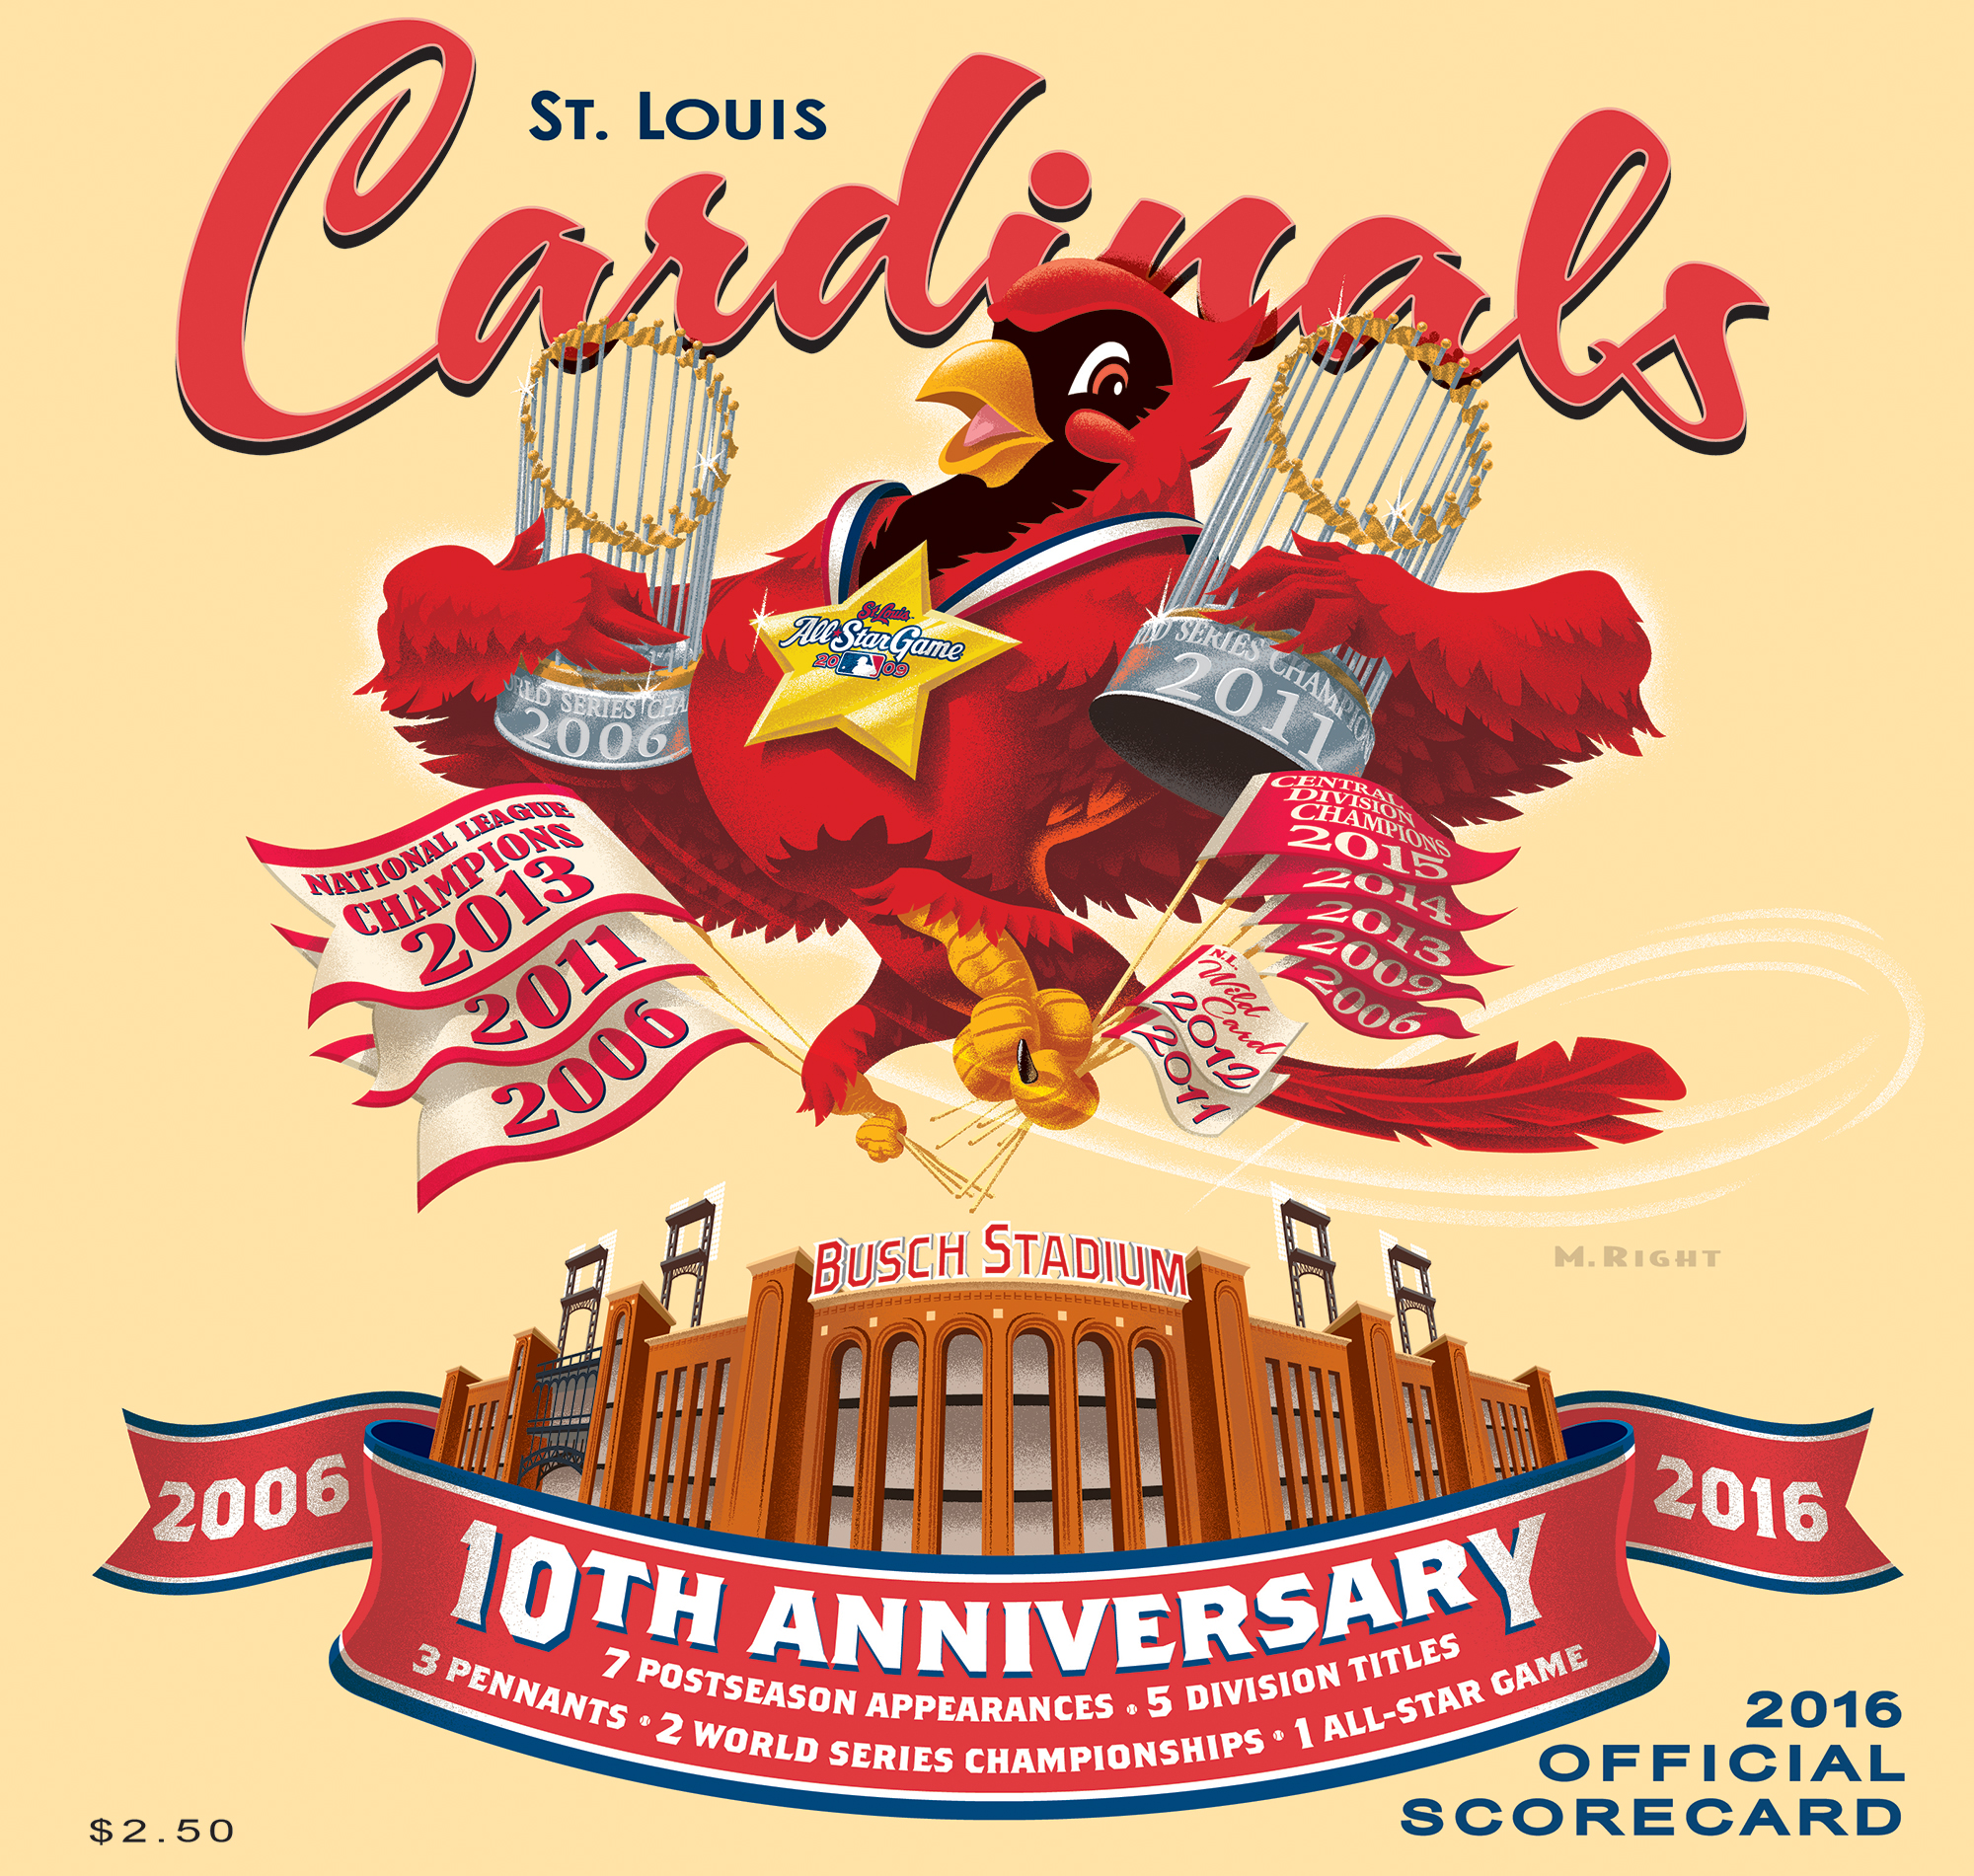 2016 Cardinals Official Scorecard